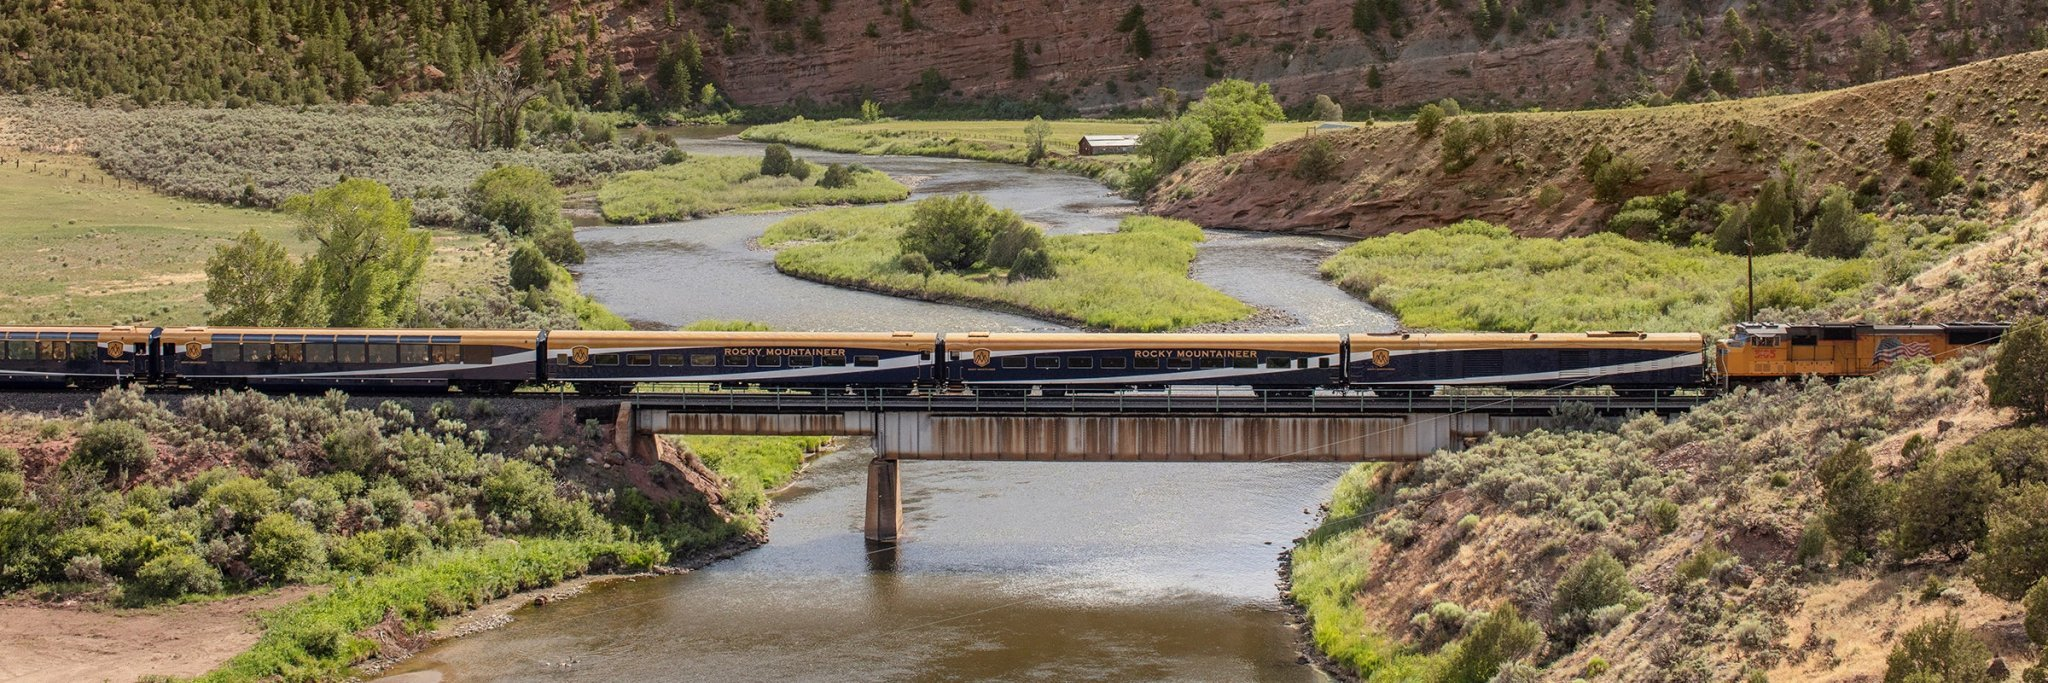 Train Travel in the U.S. Is Getting More Luxurious